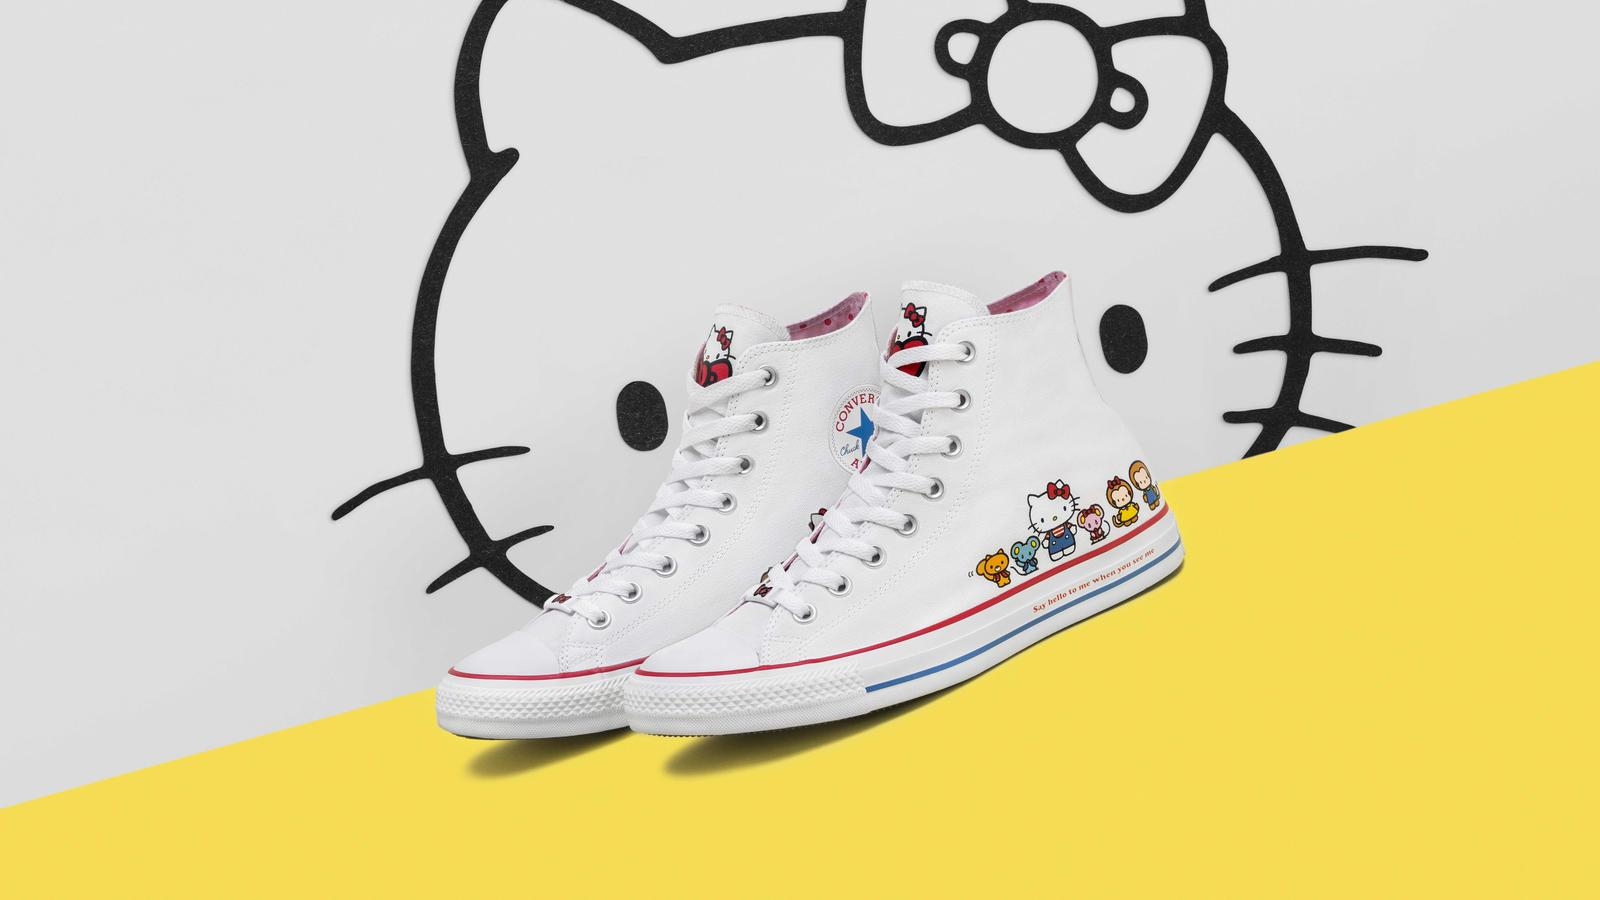 Fa18 chuck converse x hello kitty white 162944c 001 hd 1600